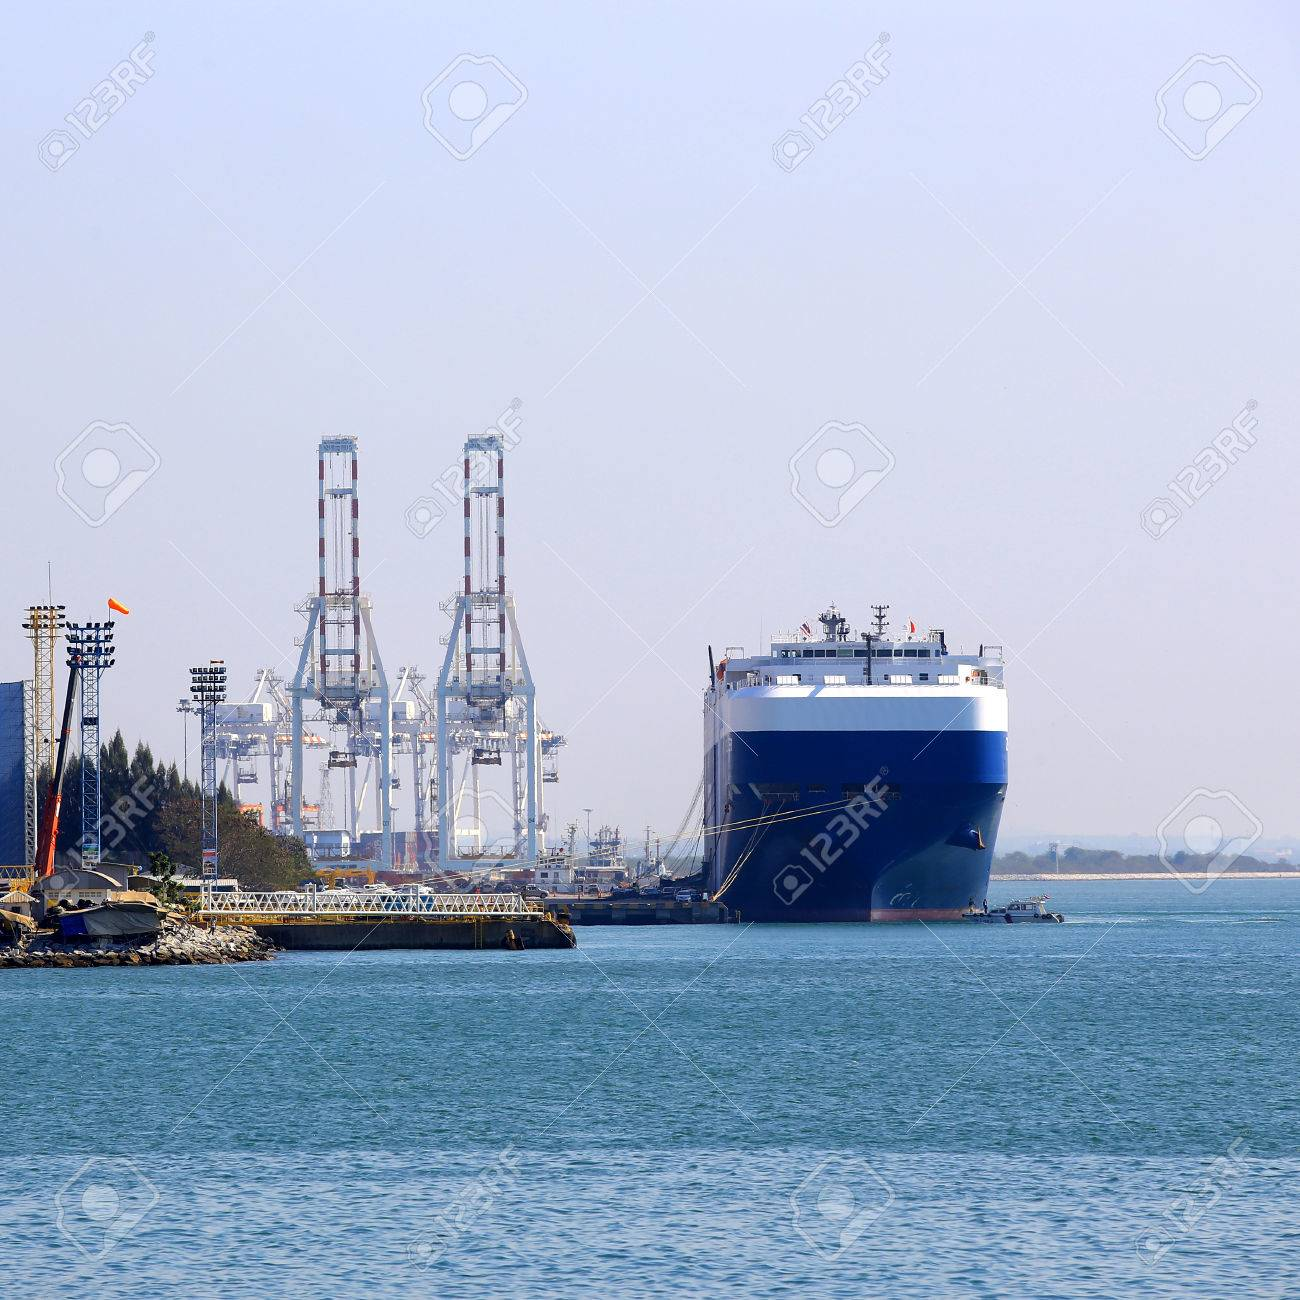 Cargo ship at the port - 25282635